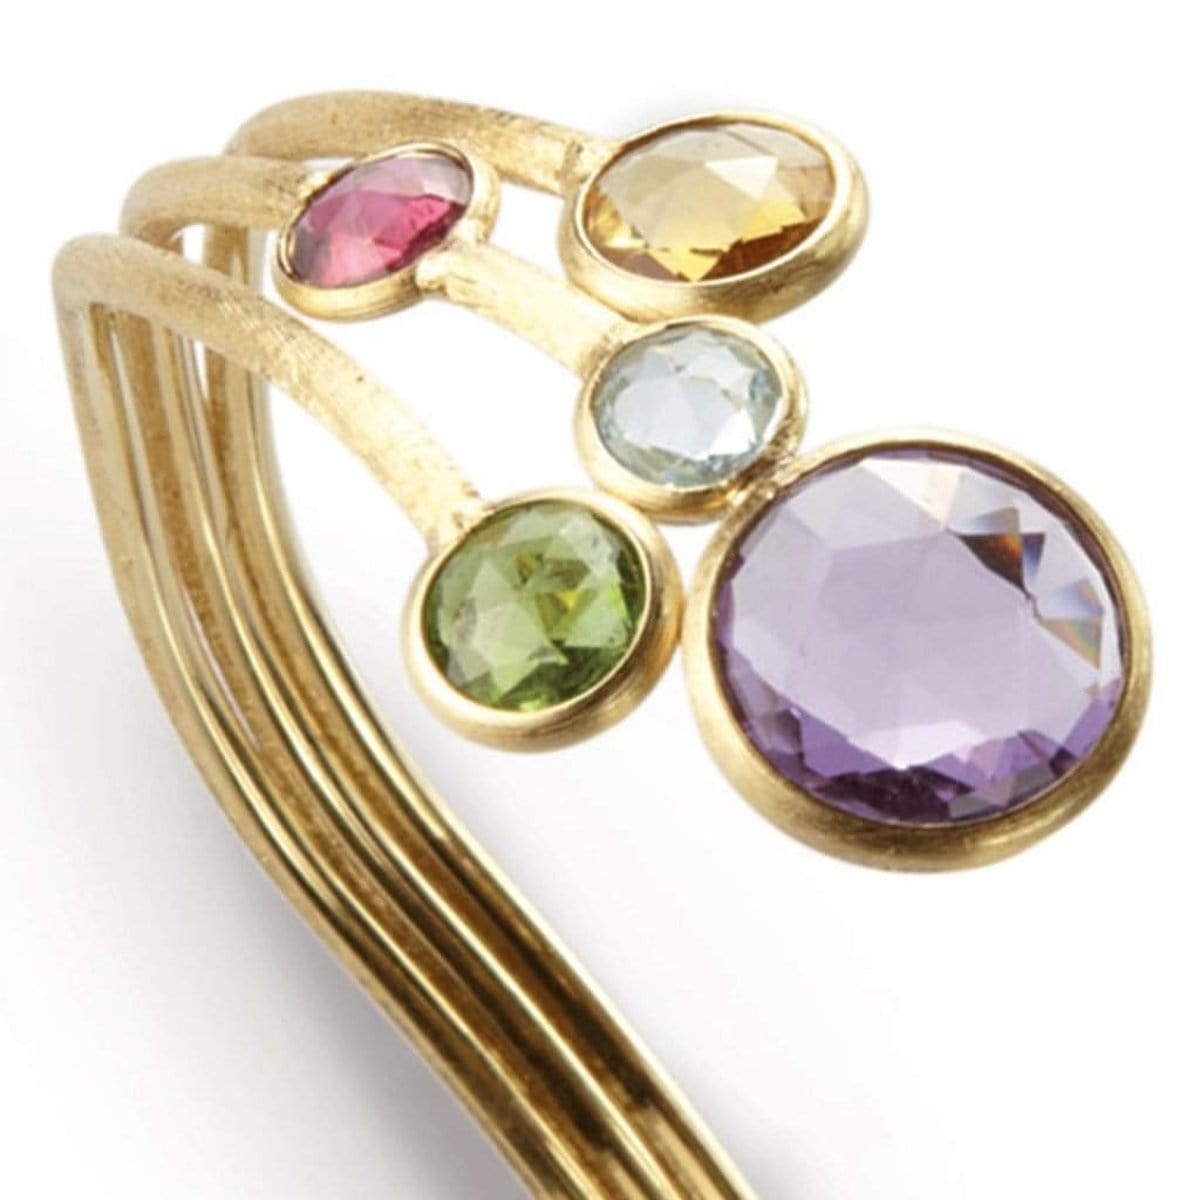 Jaipur Mixed Gemstone Bangle - SB51 MIX01 Y-Marco Bicego-Renee Taylor Gallery